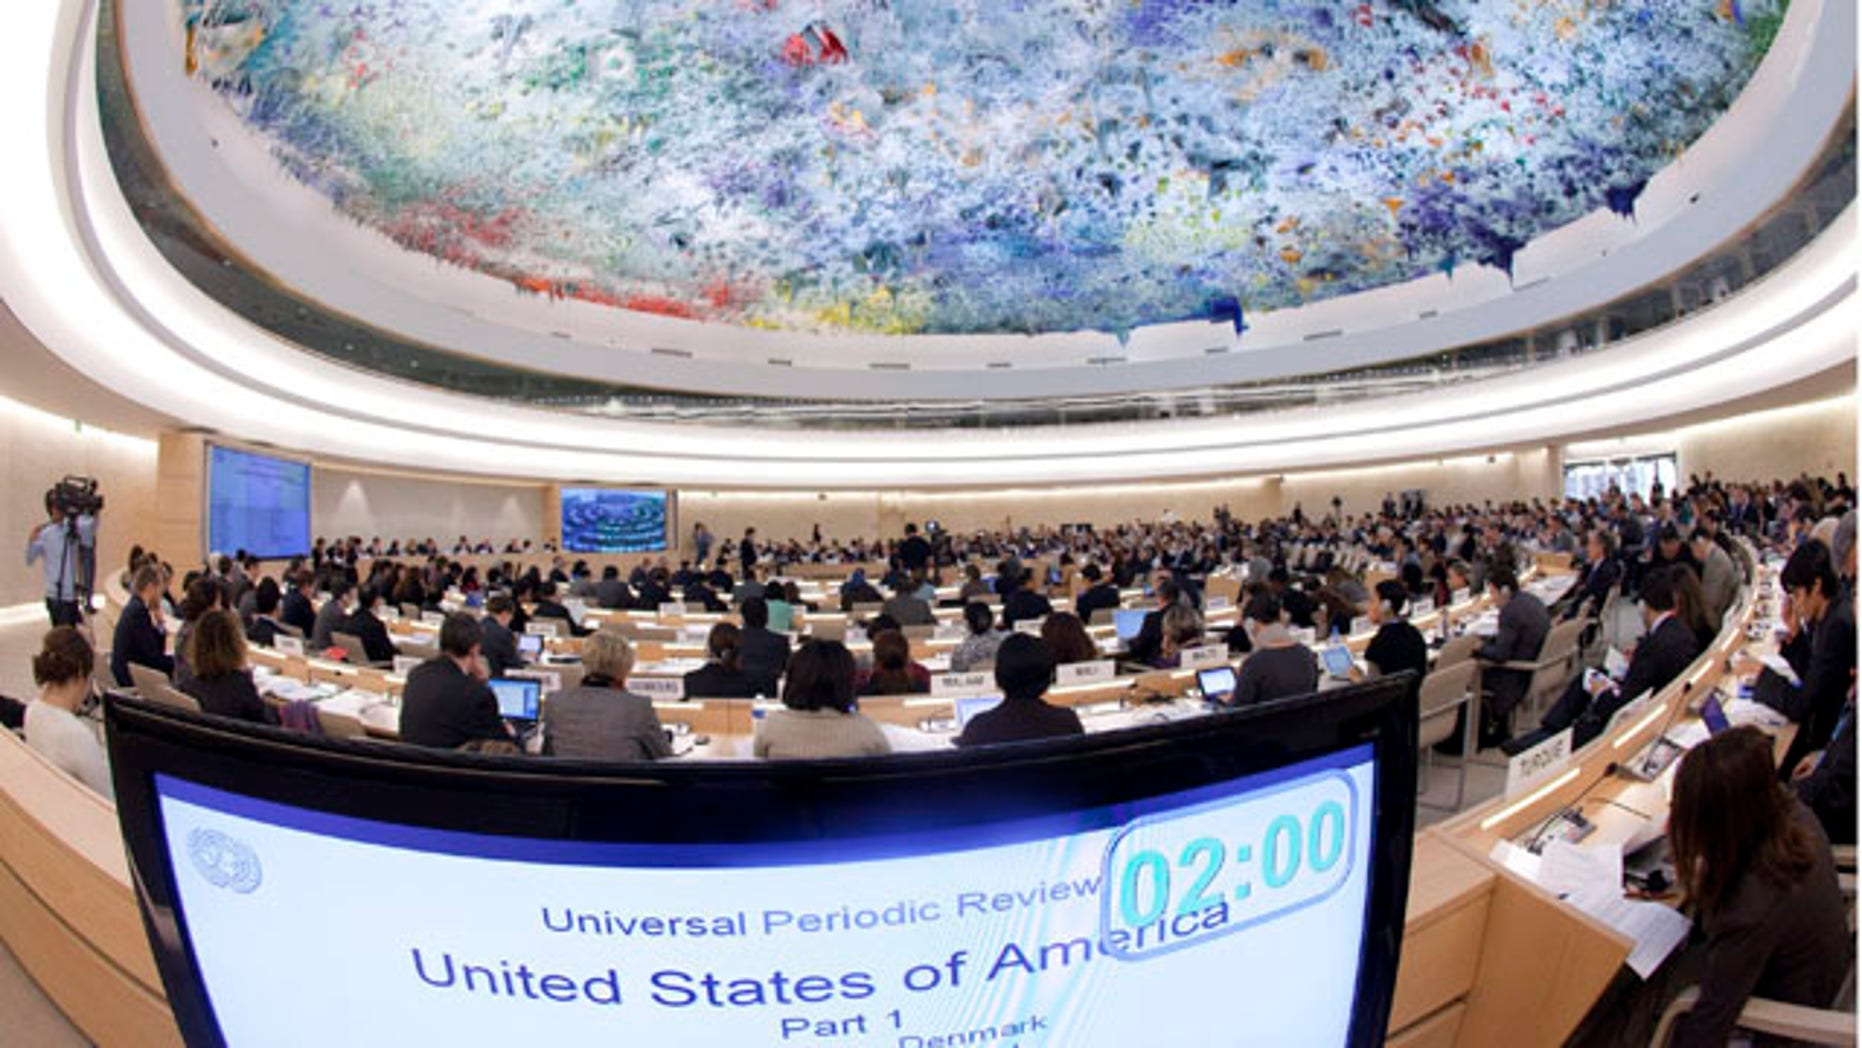 Nov. 5: General view of the assembly hall during the Universal Periodic Review (UPR) on the United States of America of the Human Rights Council at the European headquarters of the United Nations in Geneva, Switzerland.